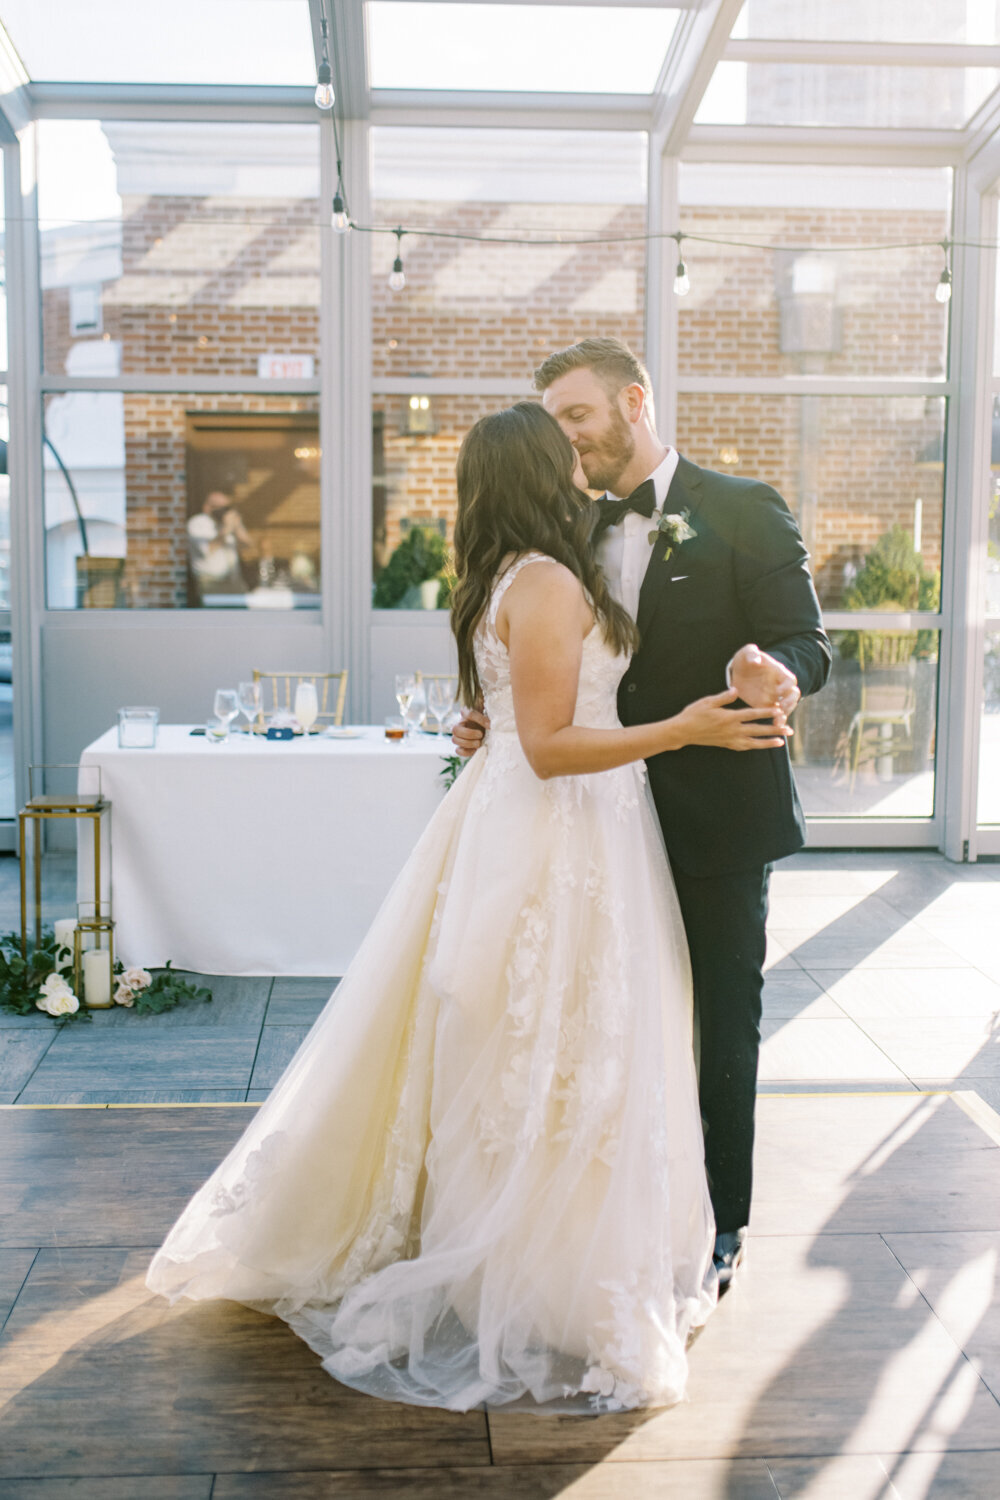 steph+jd-blog-46